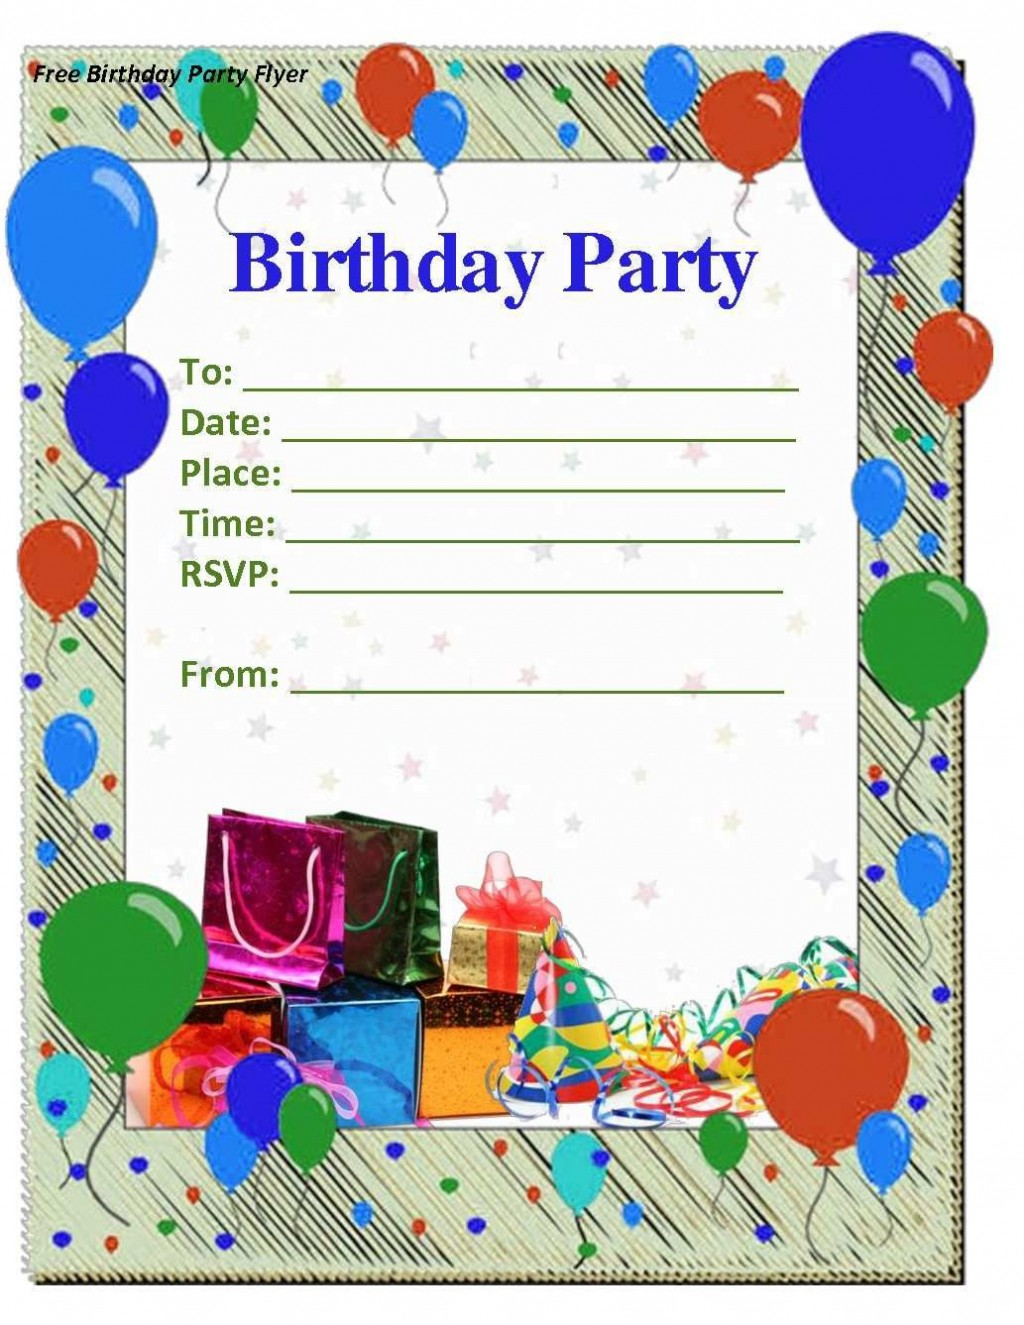 003 Rare Blank Birthday Invitation Template For Microsoft Word Highest Clarity Large